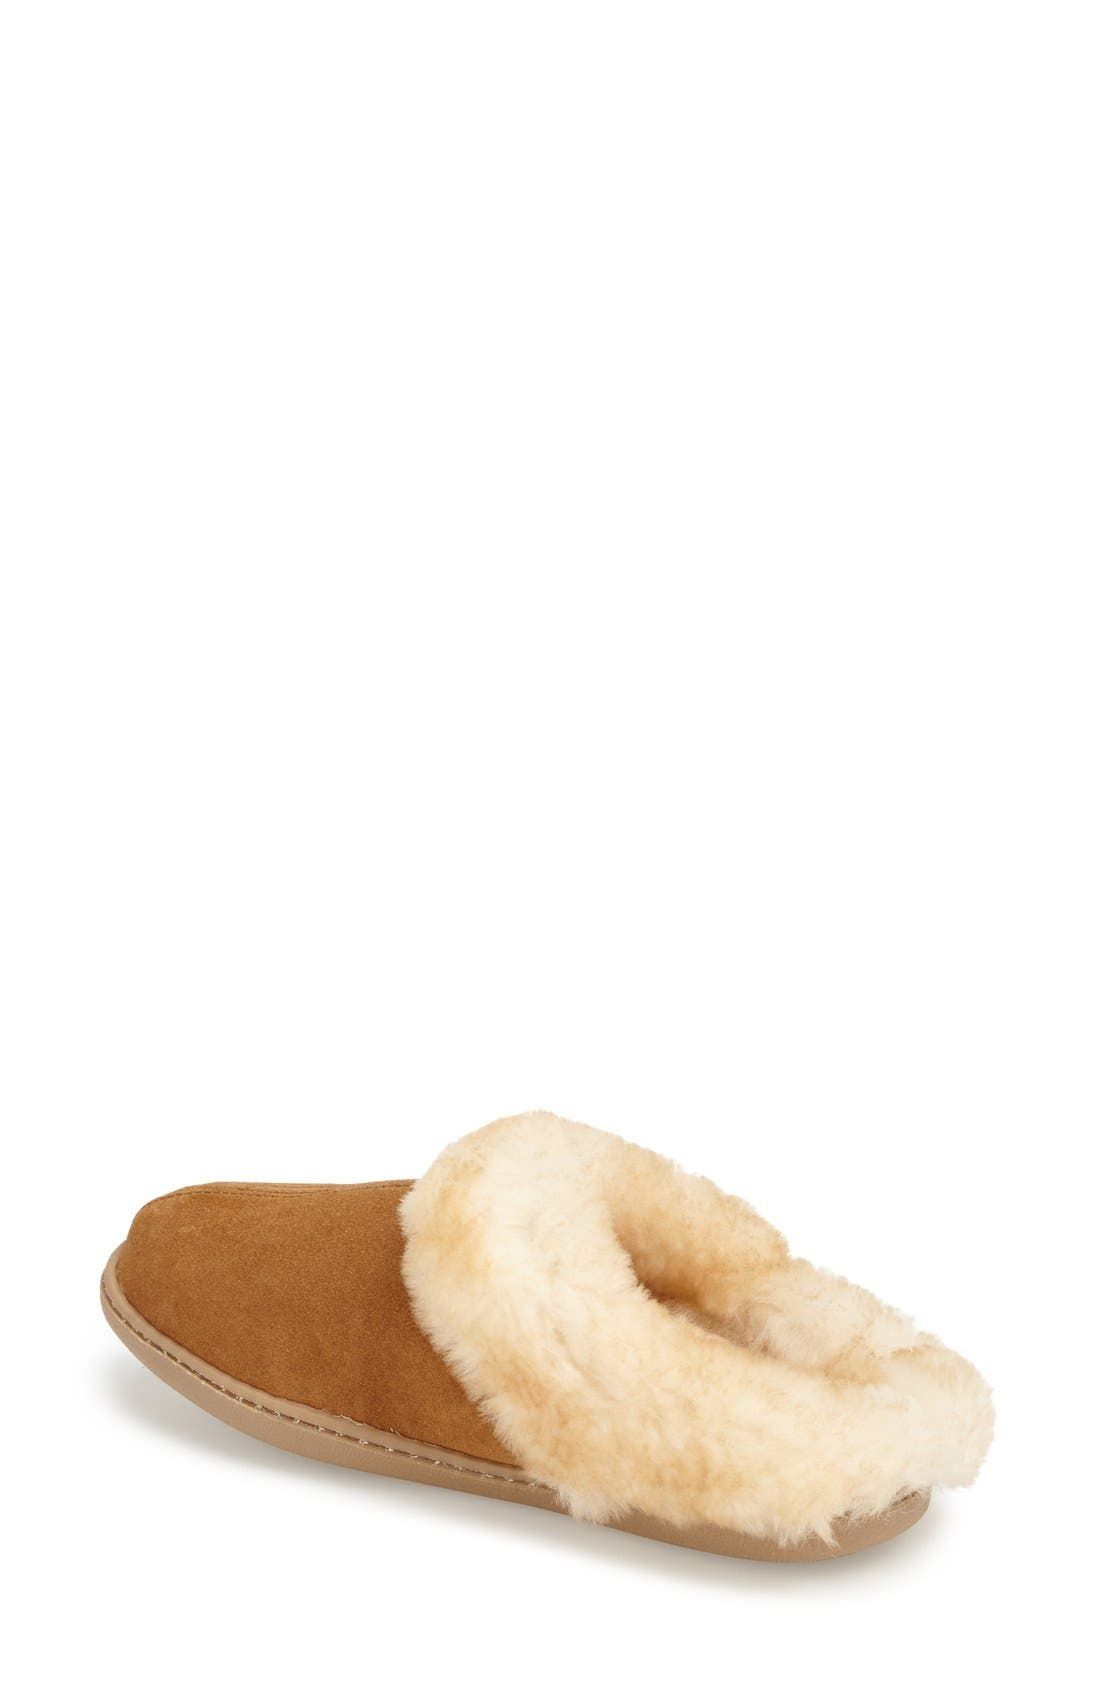 Sheepskin Mule Slipper,                             Alternate thumbnail 2, color,                             Tan Suede